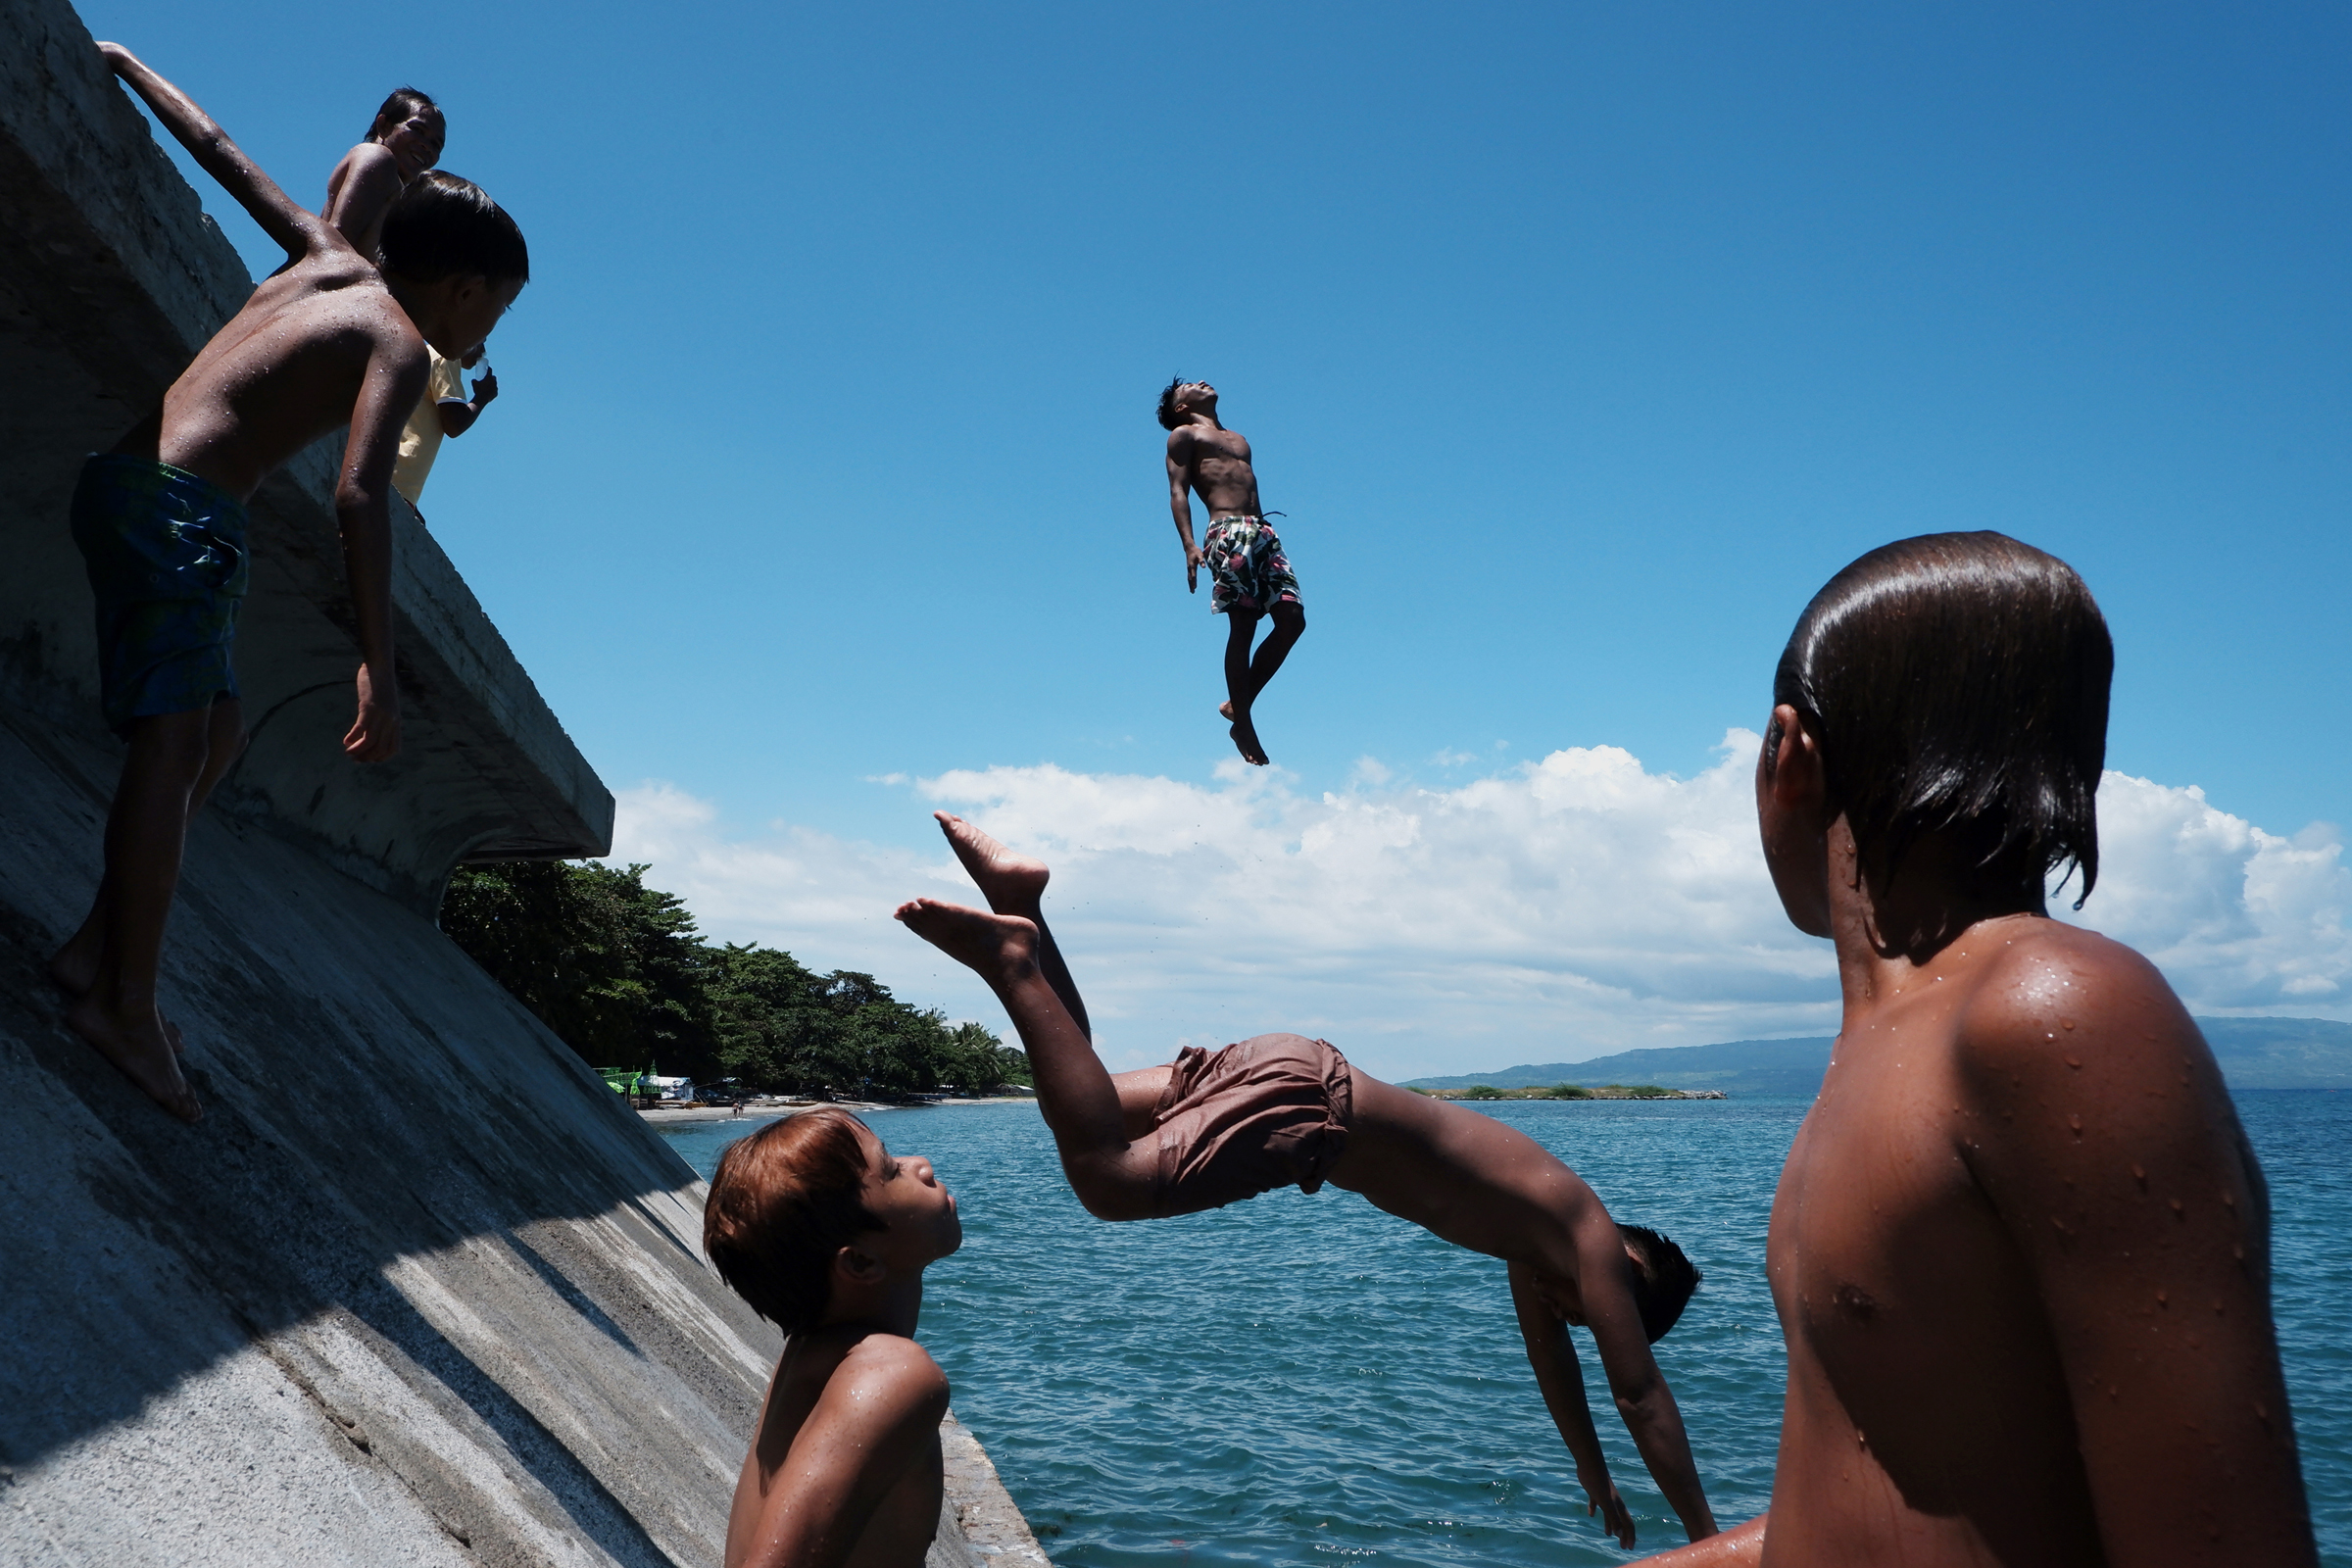 © Hersley-Ven Casero, Philippines, Shortlist, Open, Motion, 2021 Sony World Photography Awards